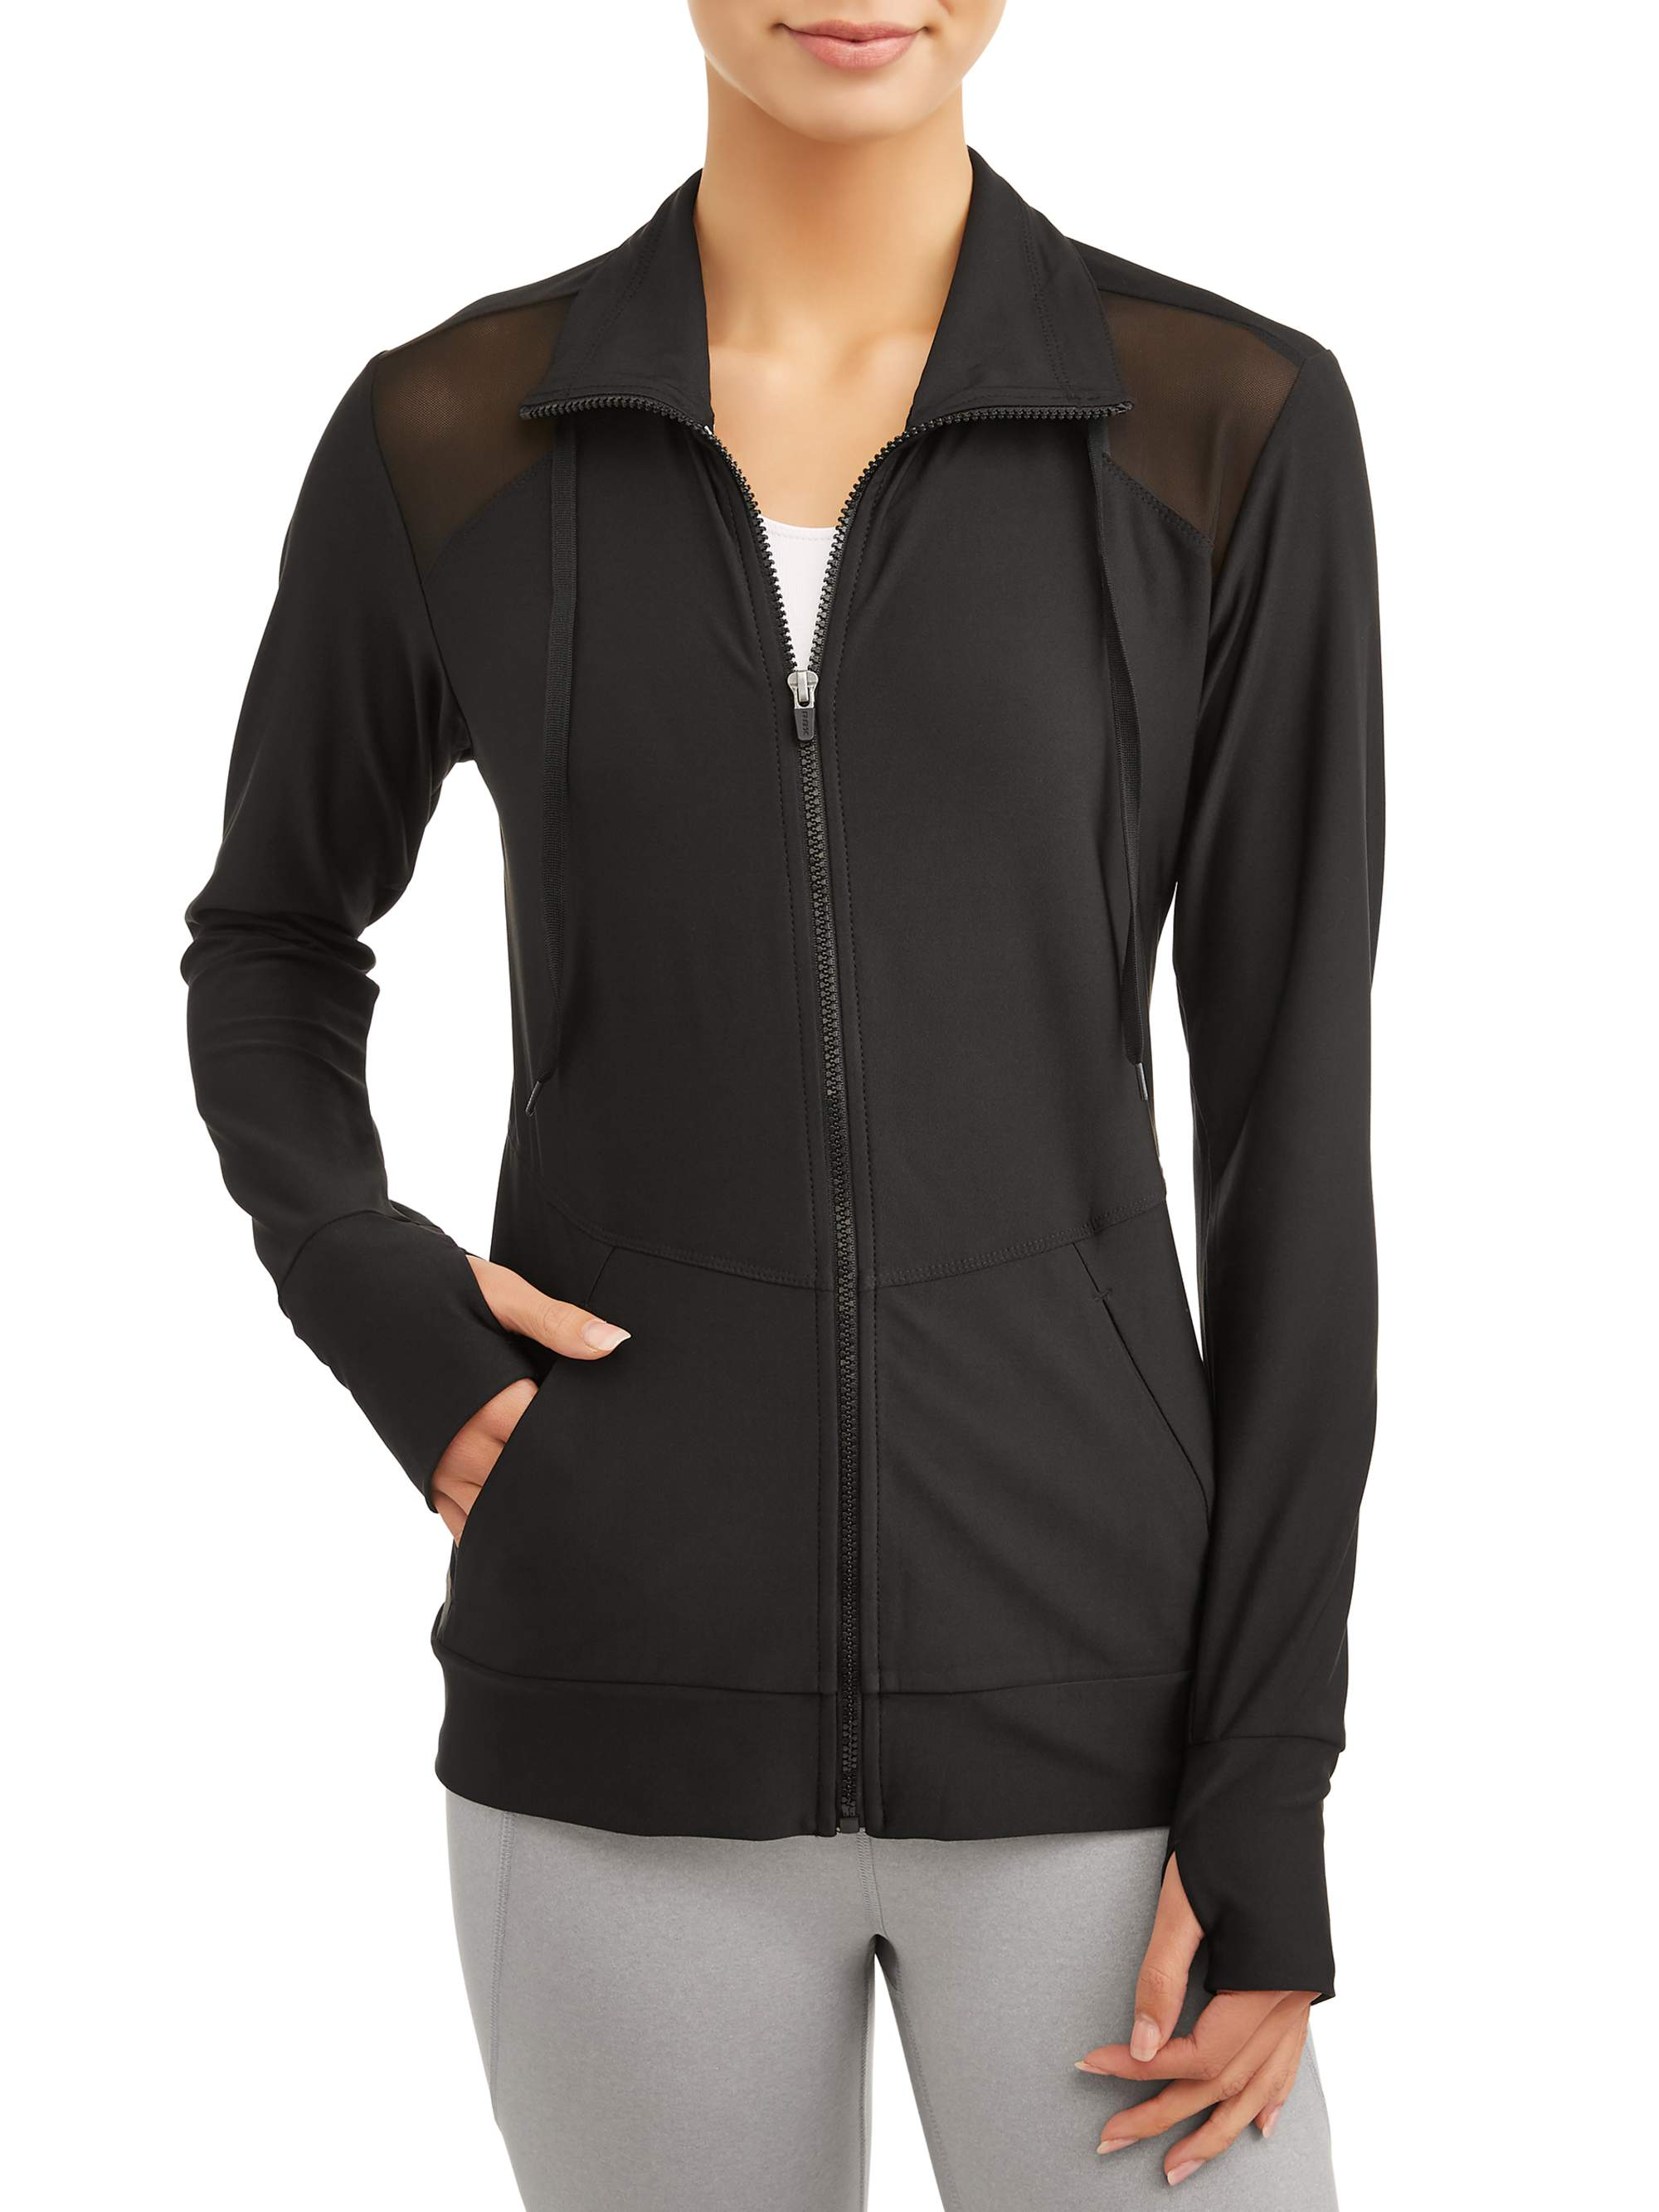 Women's Active Mock Neck Zip with Mesh